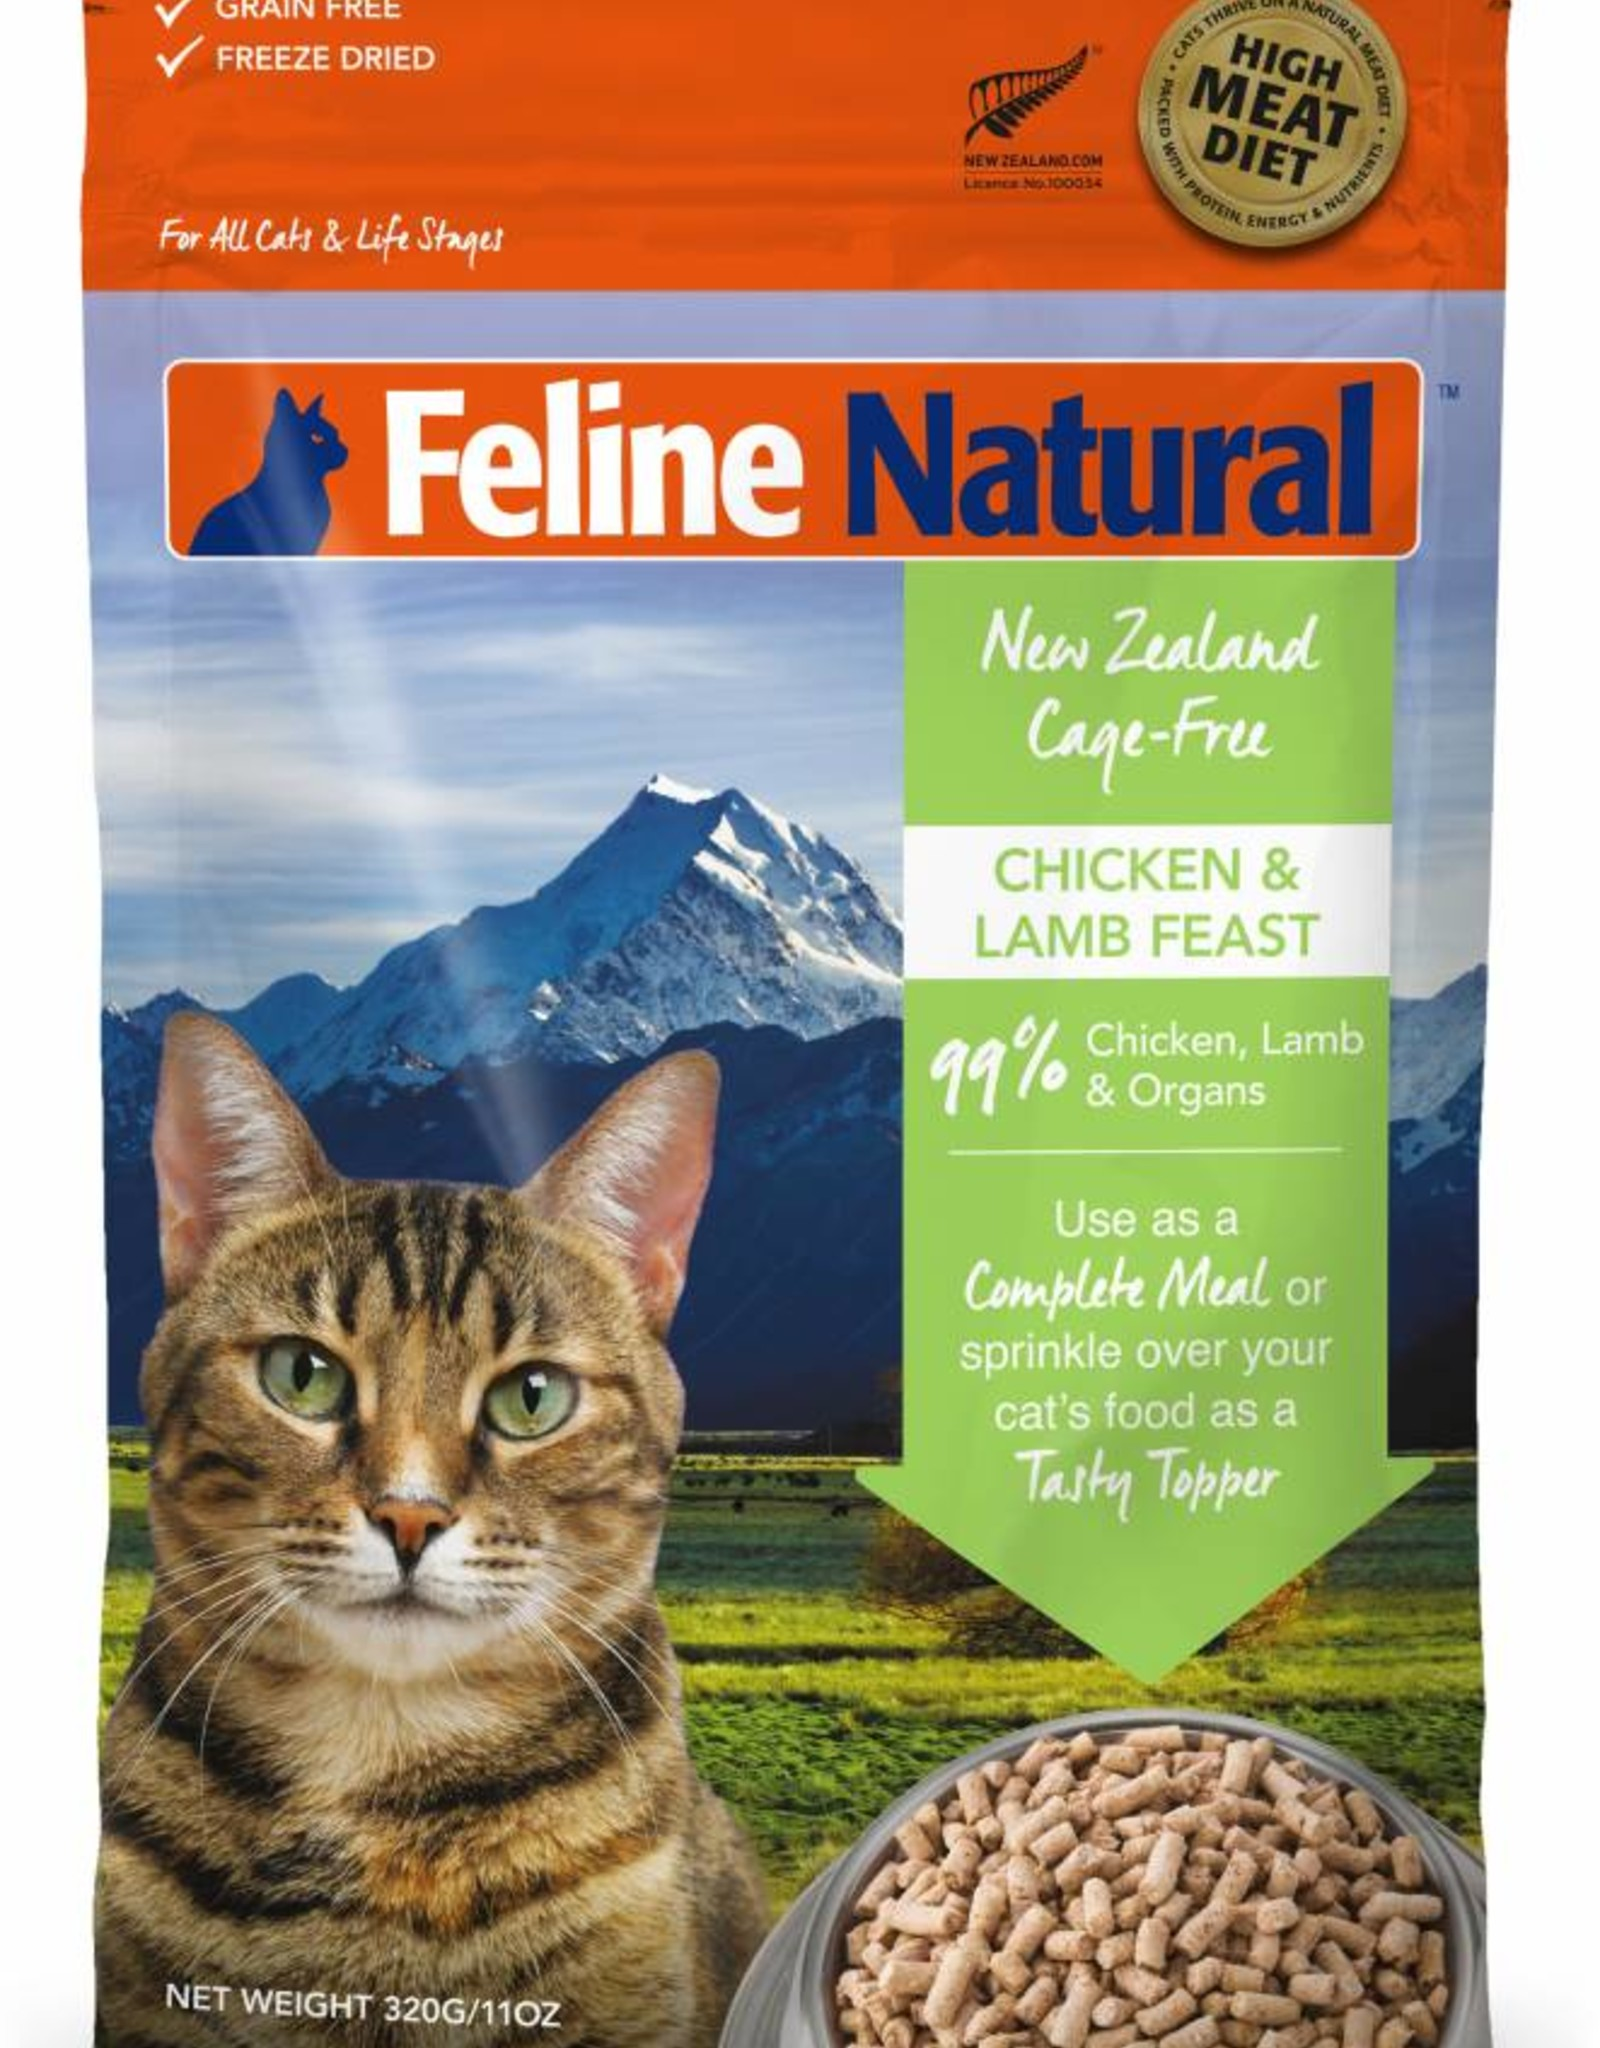 K9 Natural Feline Natural Freeze-Dried Chicken & Lamb Feast